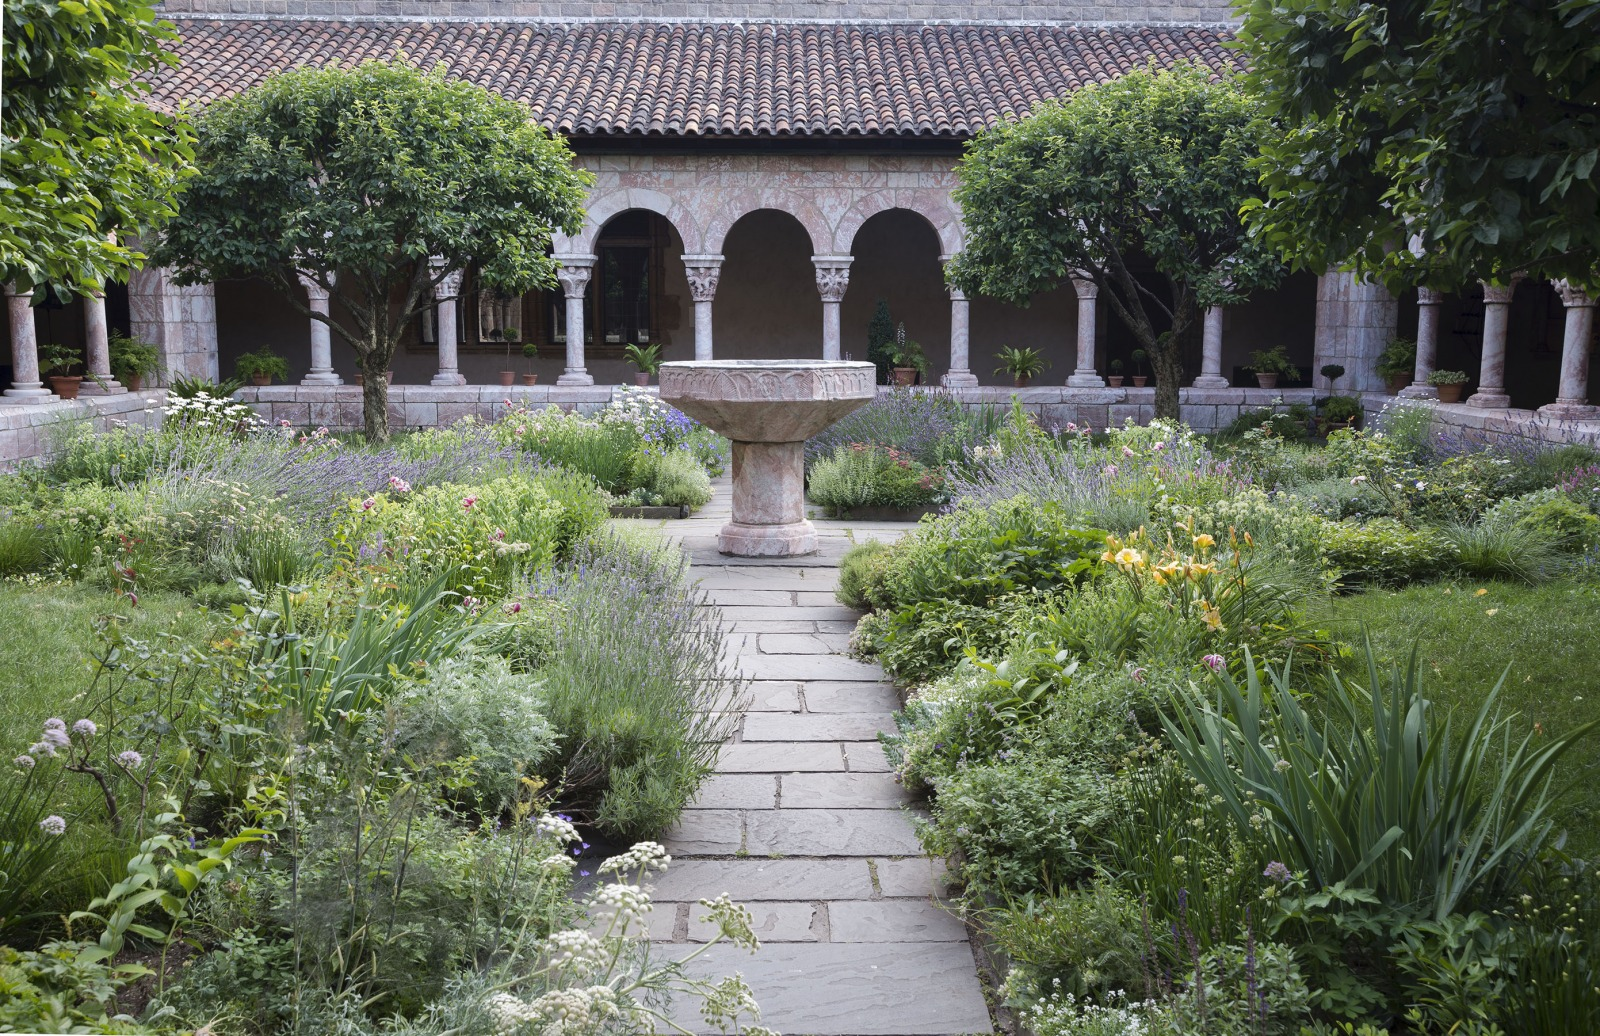 Best gardens in NYC the medieval gardens at the Met Cloisters